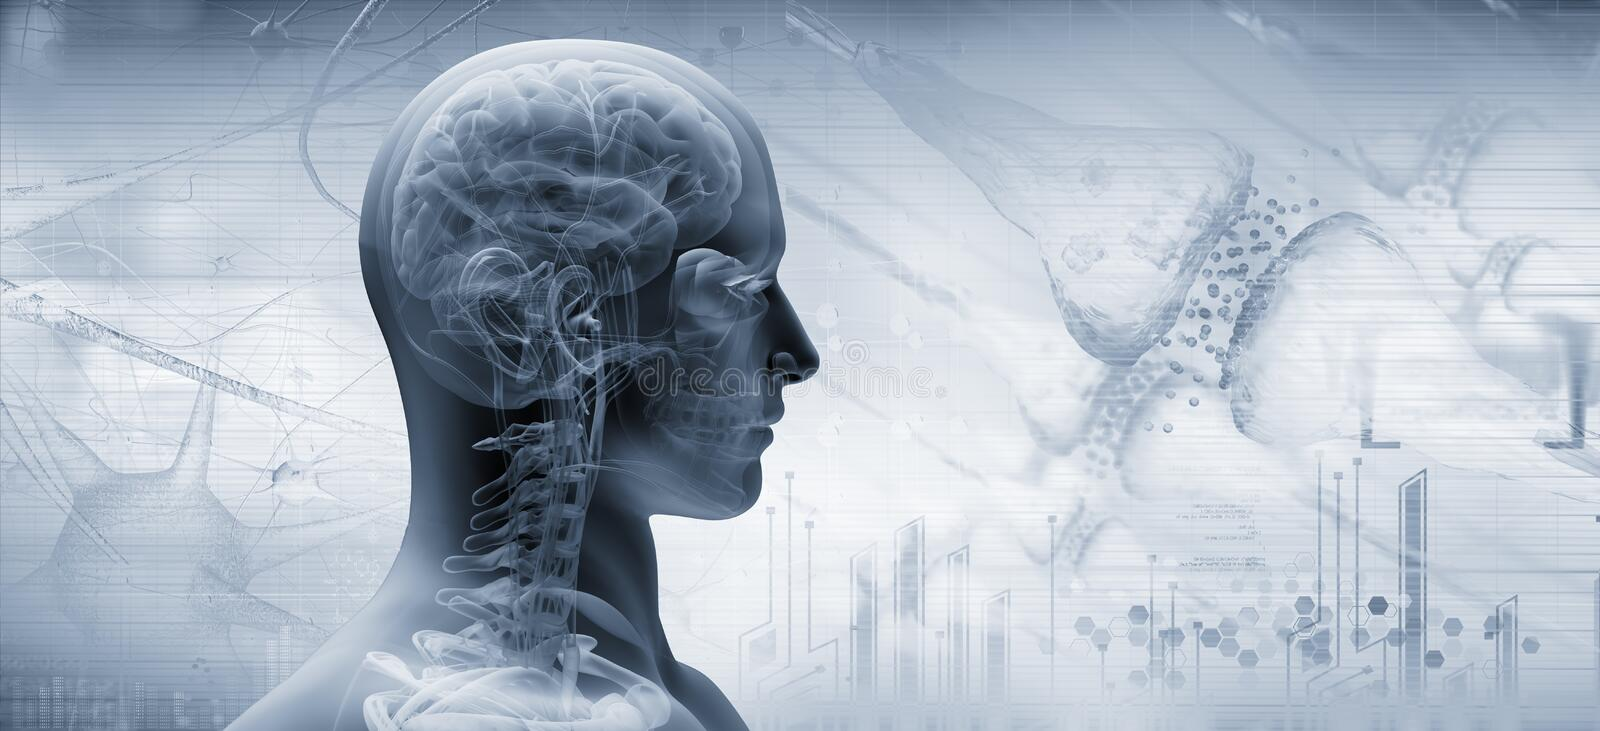 Brain, thinking concept. 3d illustration stock illustration